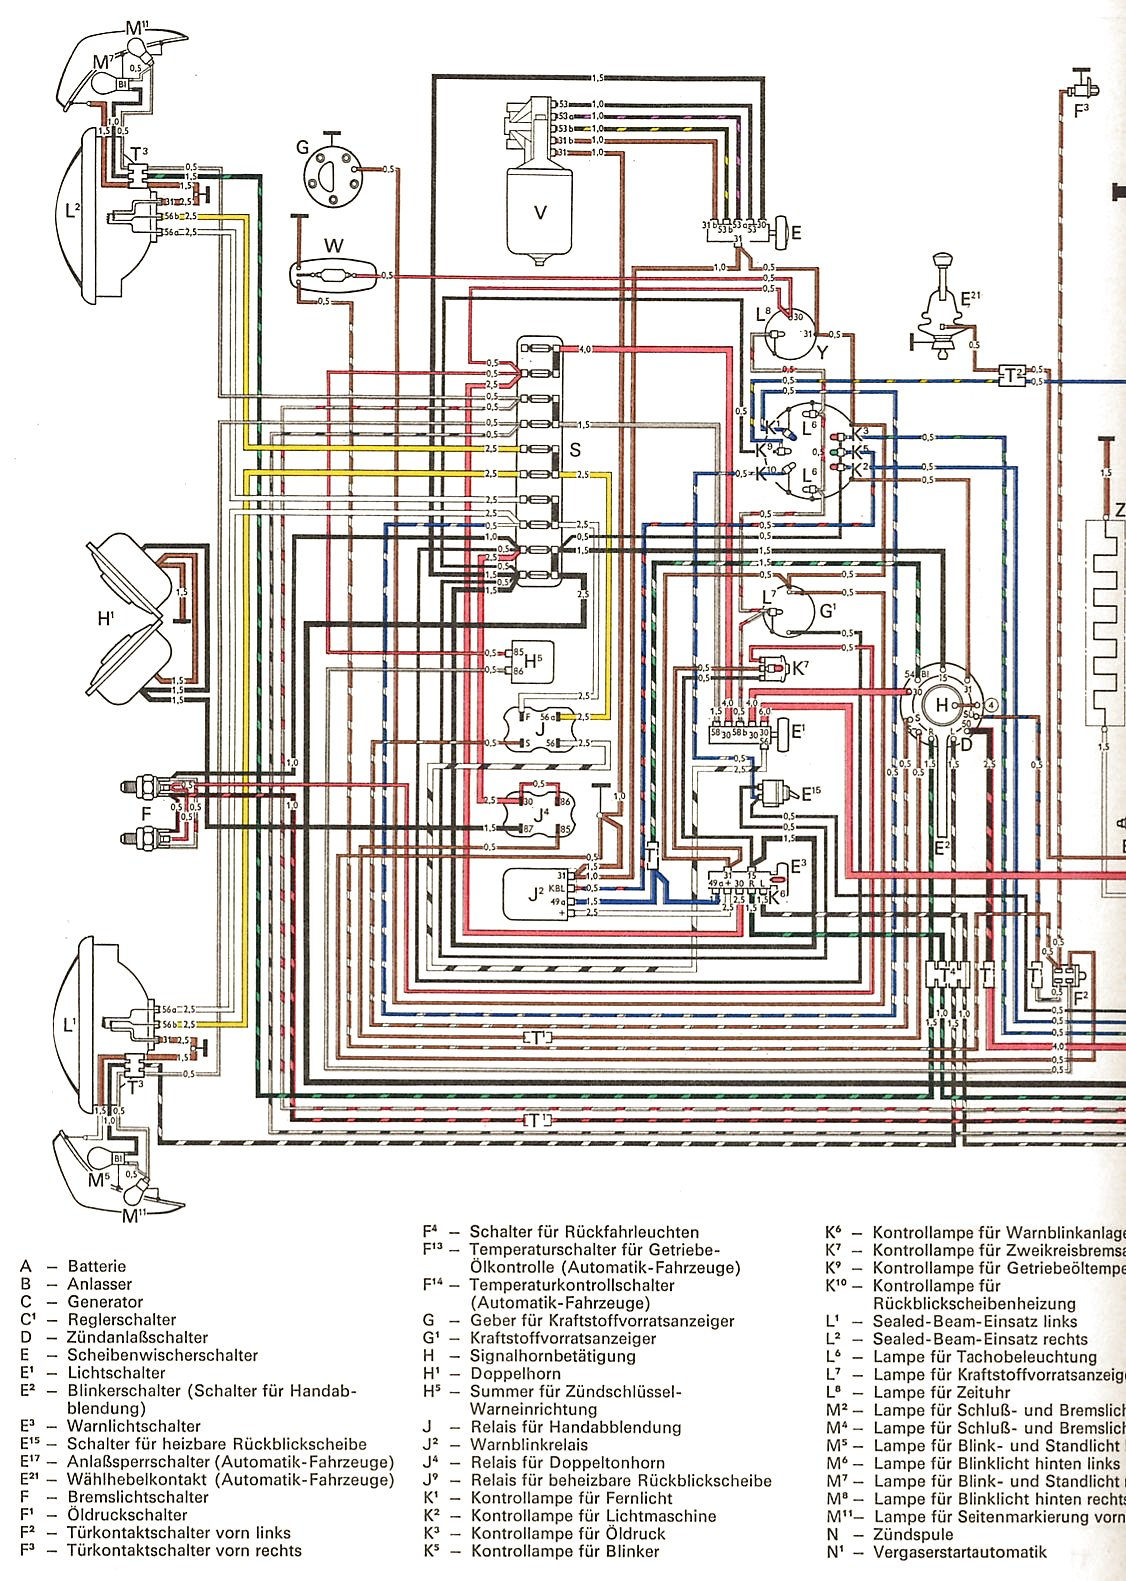 74 Charger Wiring Diagrams Library Karmann Ghia Diagram Thesamba Com View Topic Colored Rh 1974